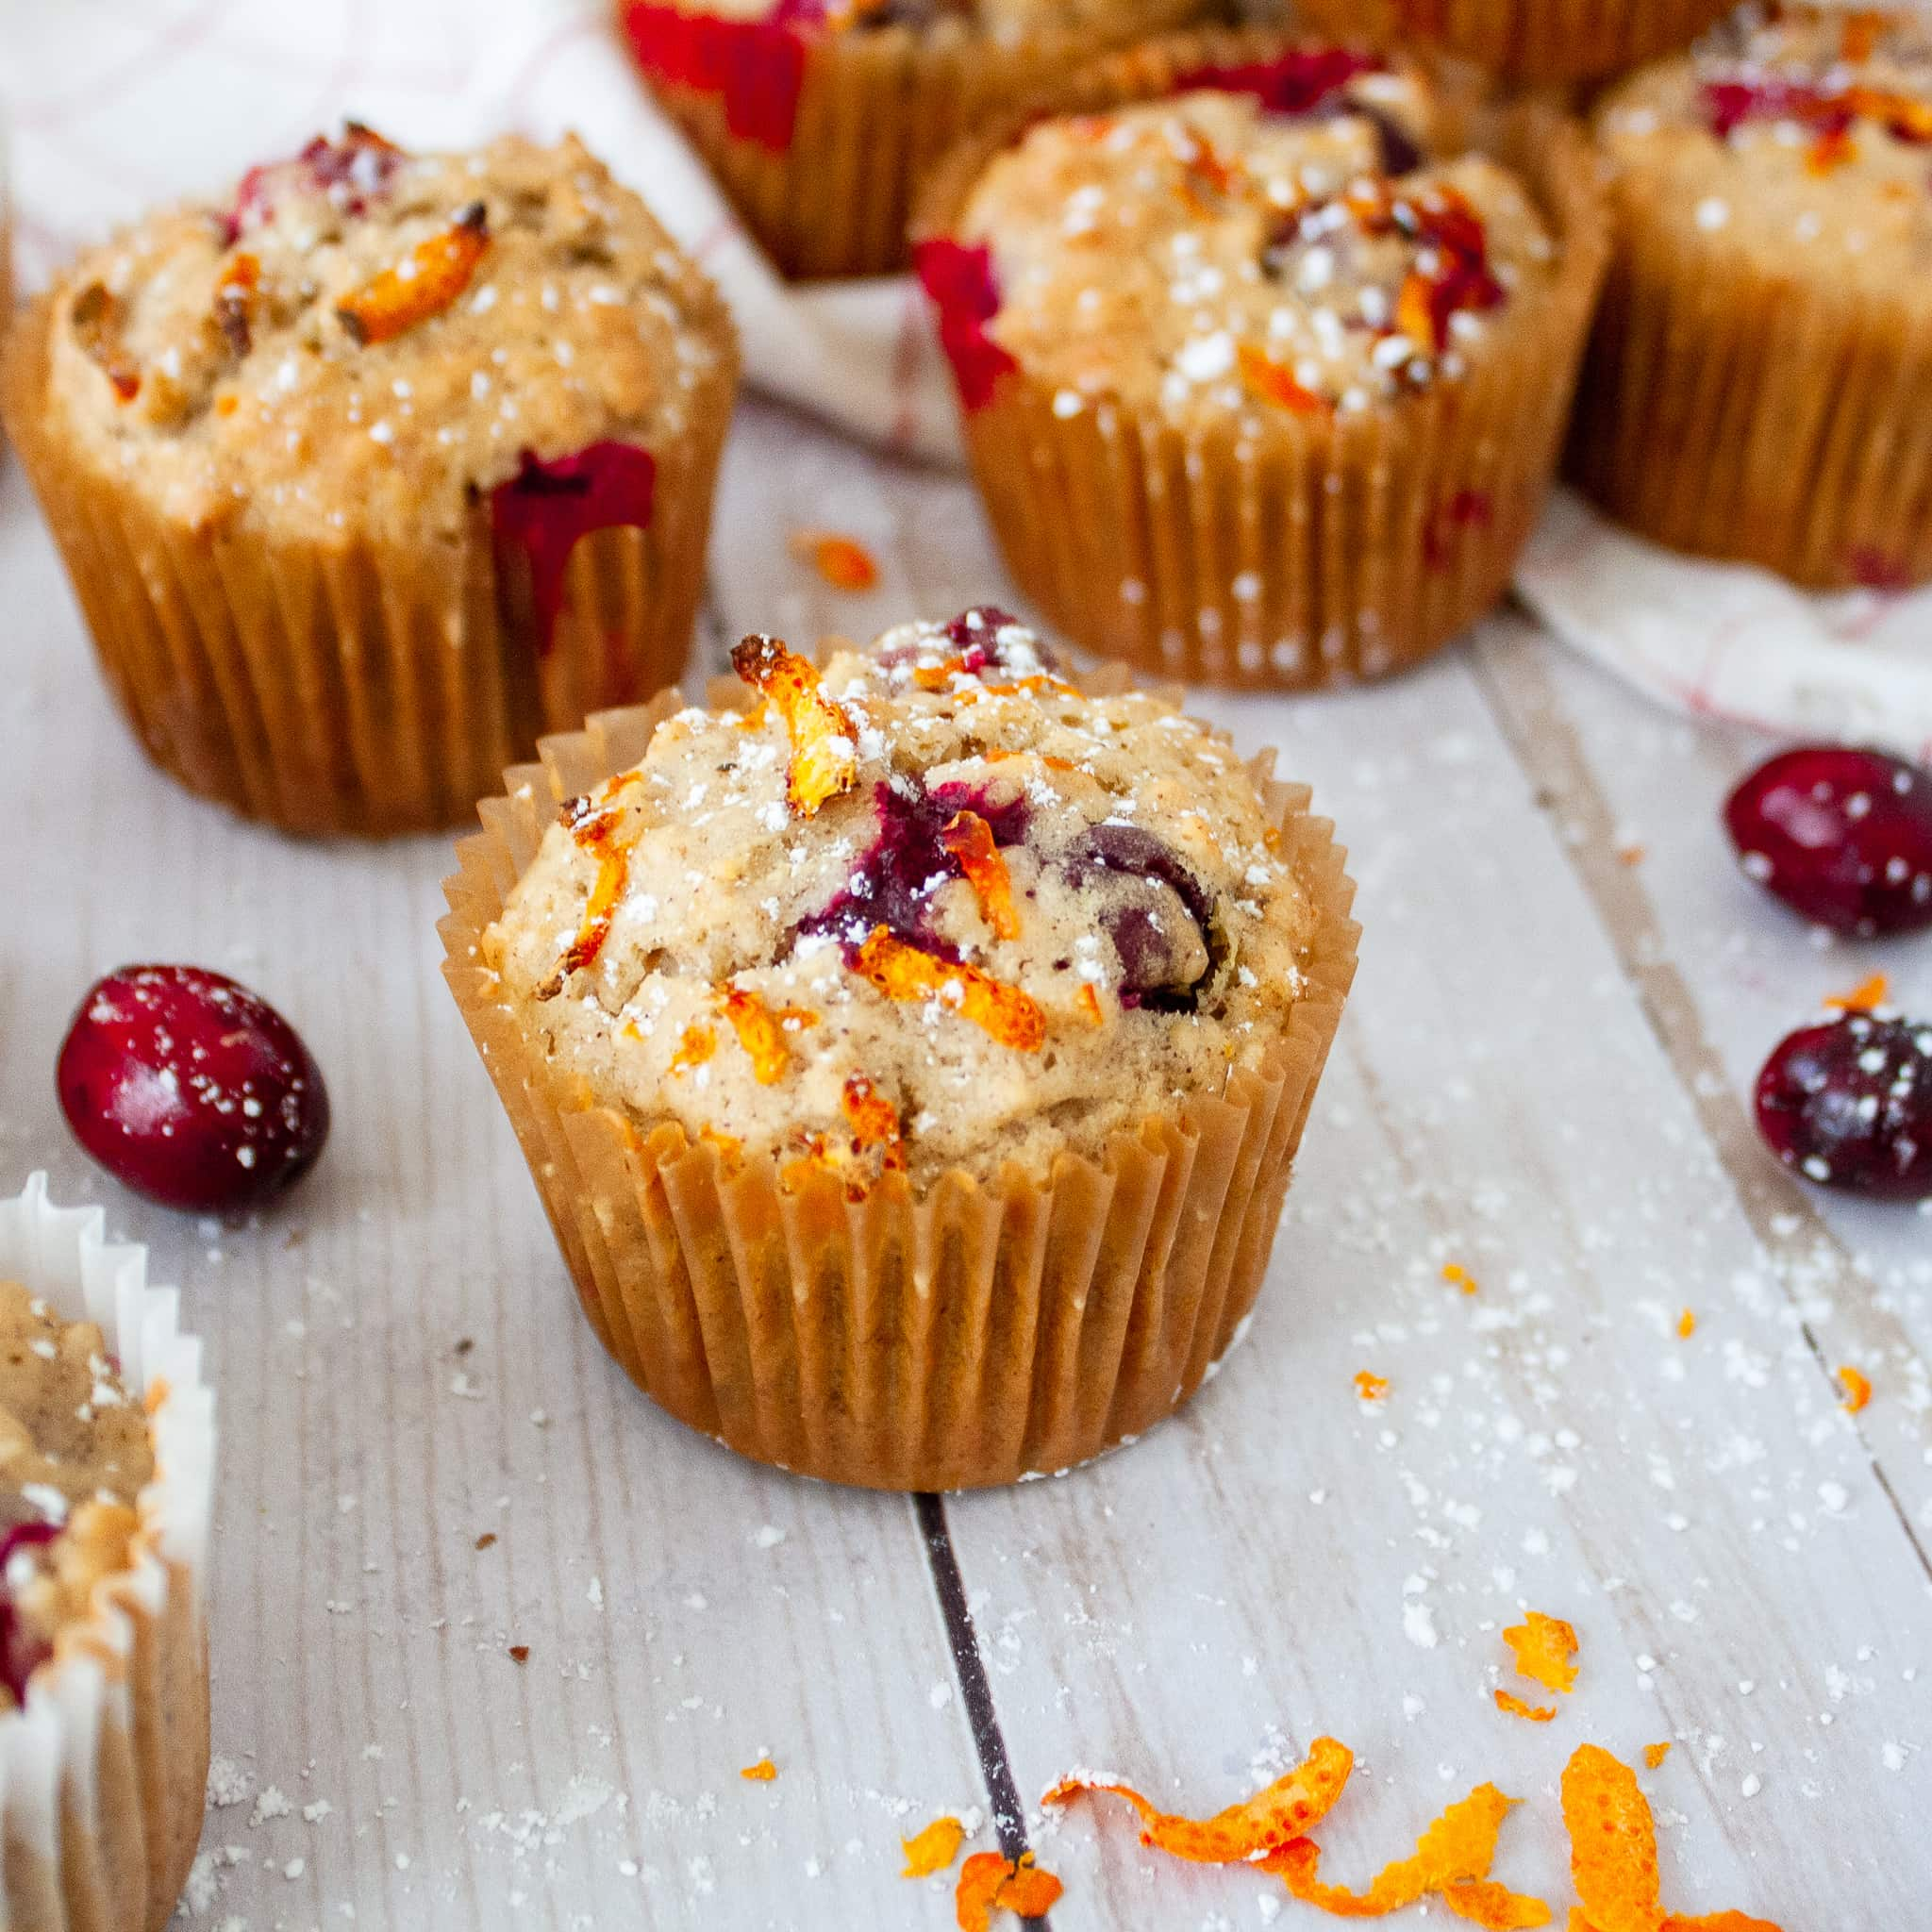 Cranberry Oatmeal Muffins topped with orange zest and powdered sugar